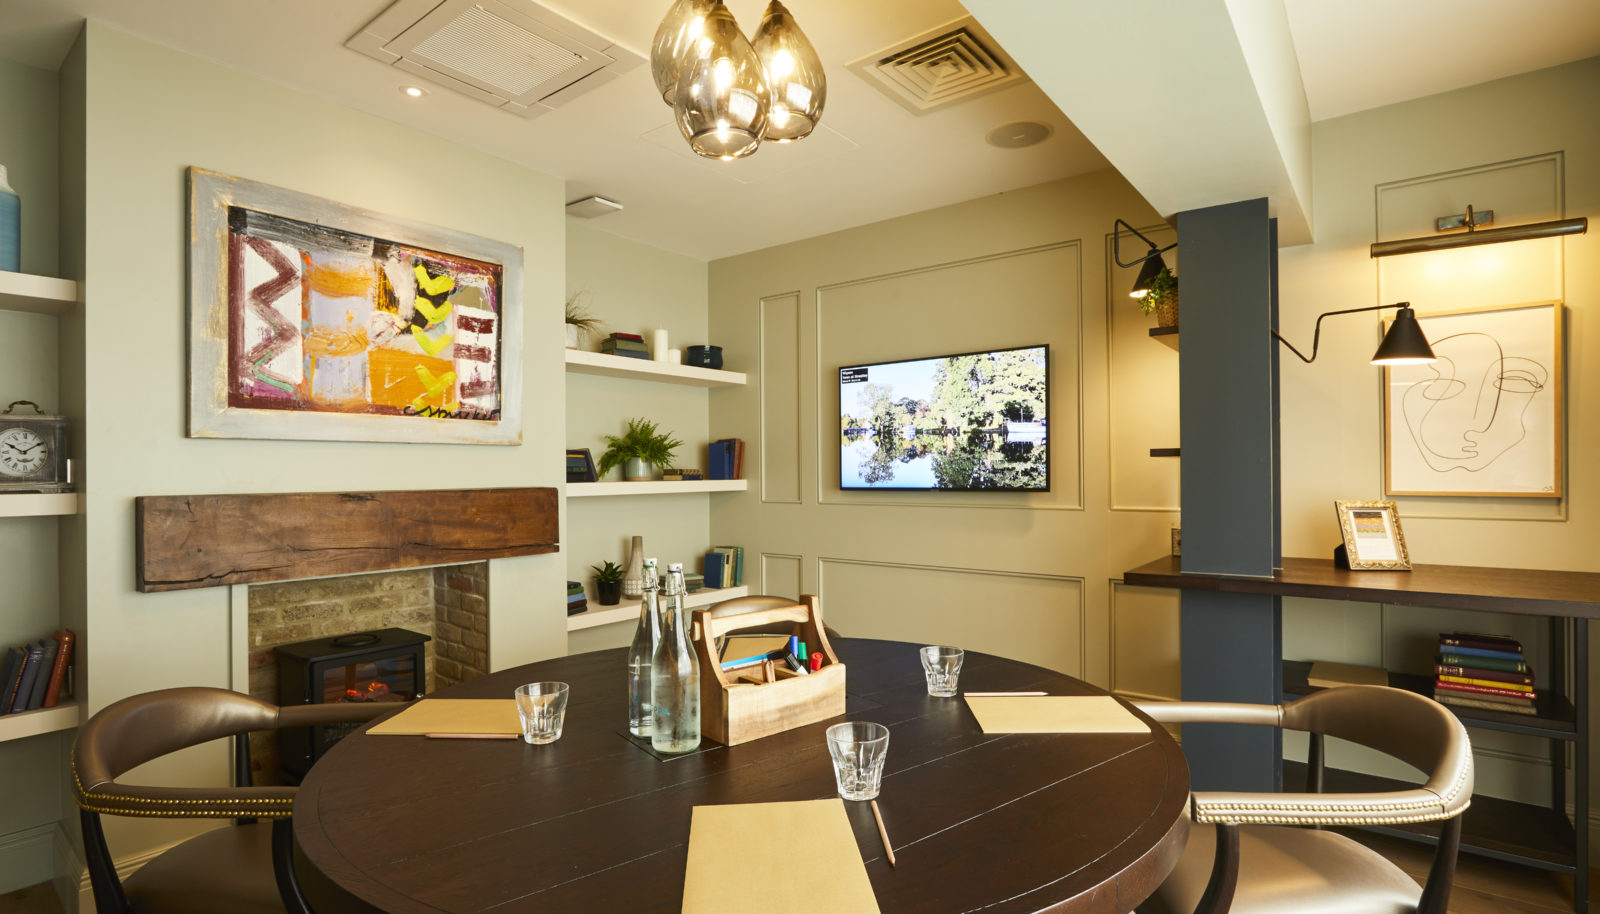 Wigeon meeting room at the Swan at Streatley events space with art and screen